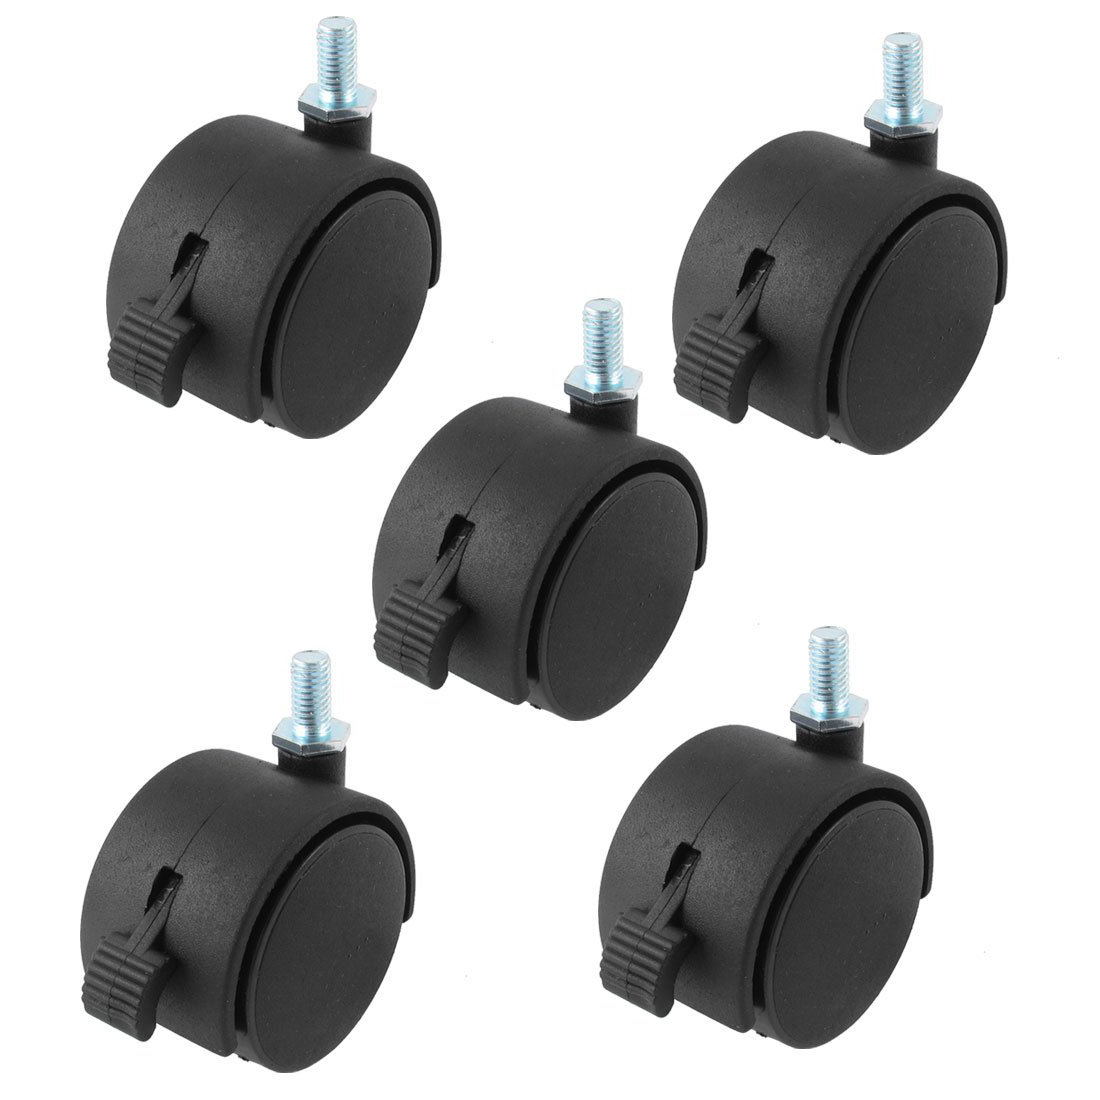 8mm Threaded Stem 5 Inch Dia Wheel Chair Swivel Caster With brake 5 Pcs Black helo he866 gloss black wheel with chrome accents 20x8 5 6x135mm